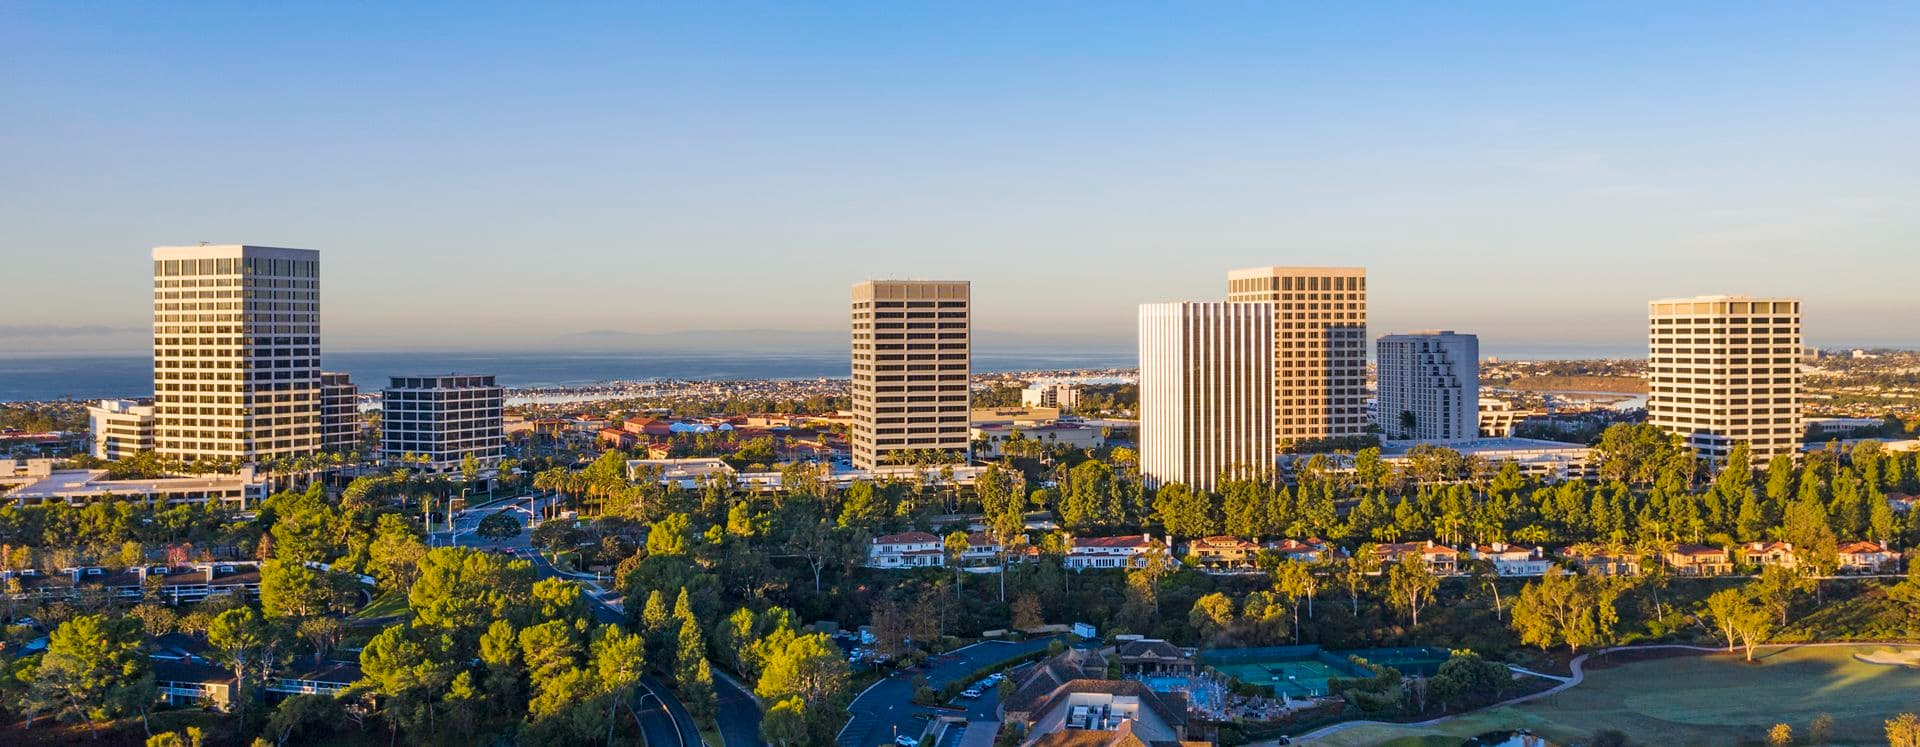 Aerial photography of the Newport Center area featuring snowy mountains in Newport Beach, CA